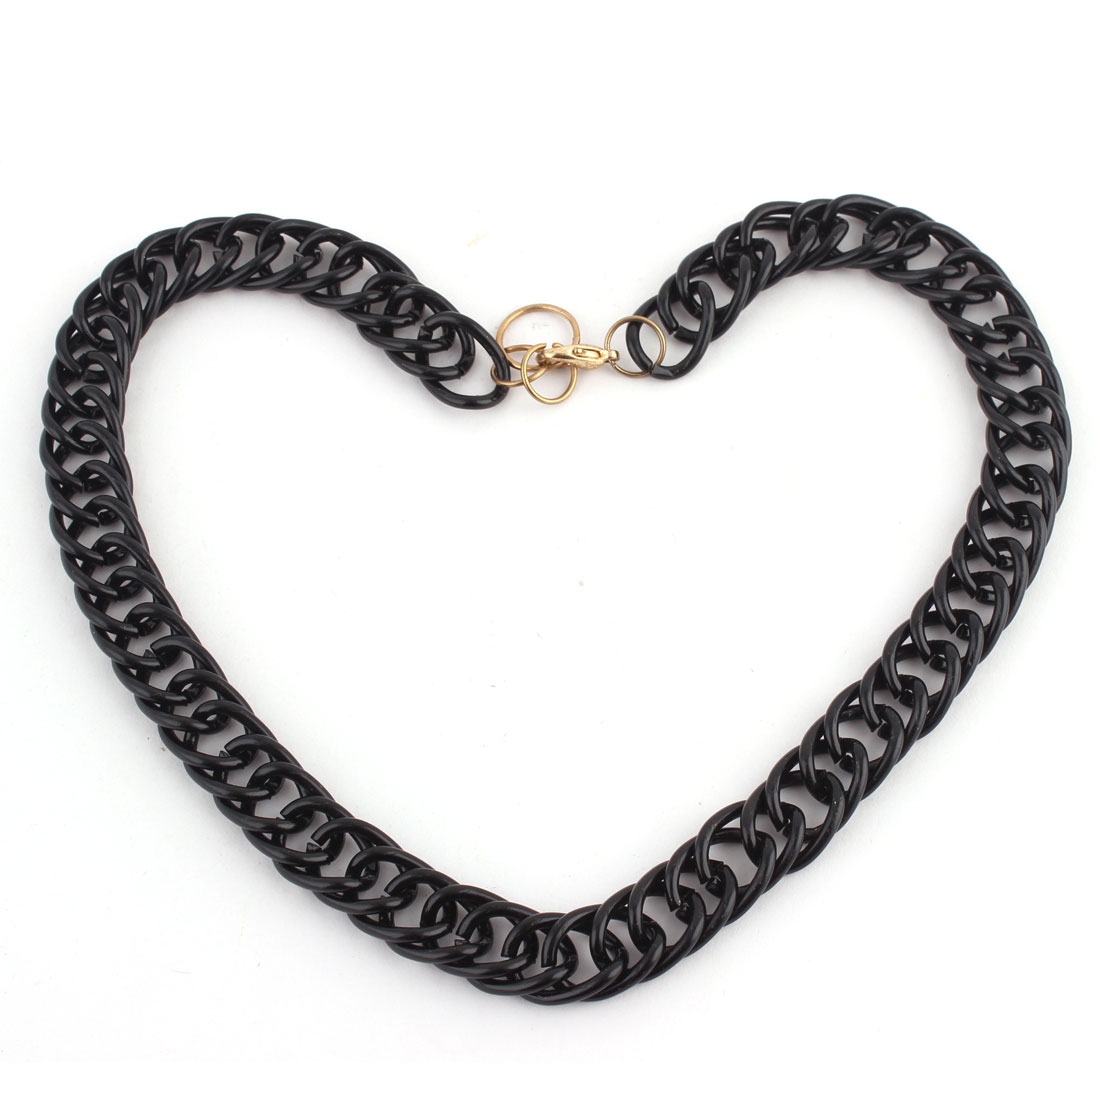 Metal Lobster Buckle Strip Link Thick Chain Necklace Clothes Decor Black